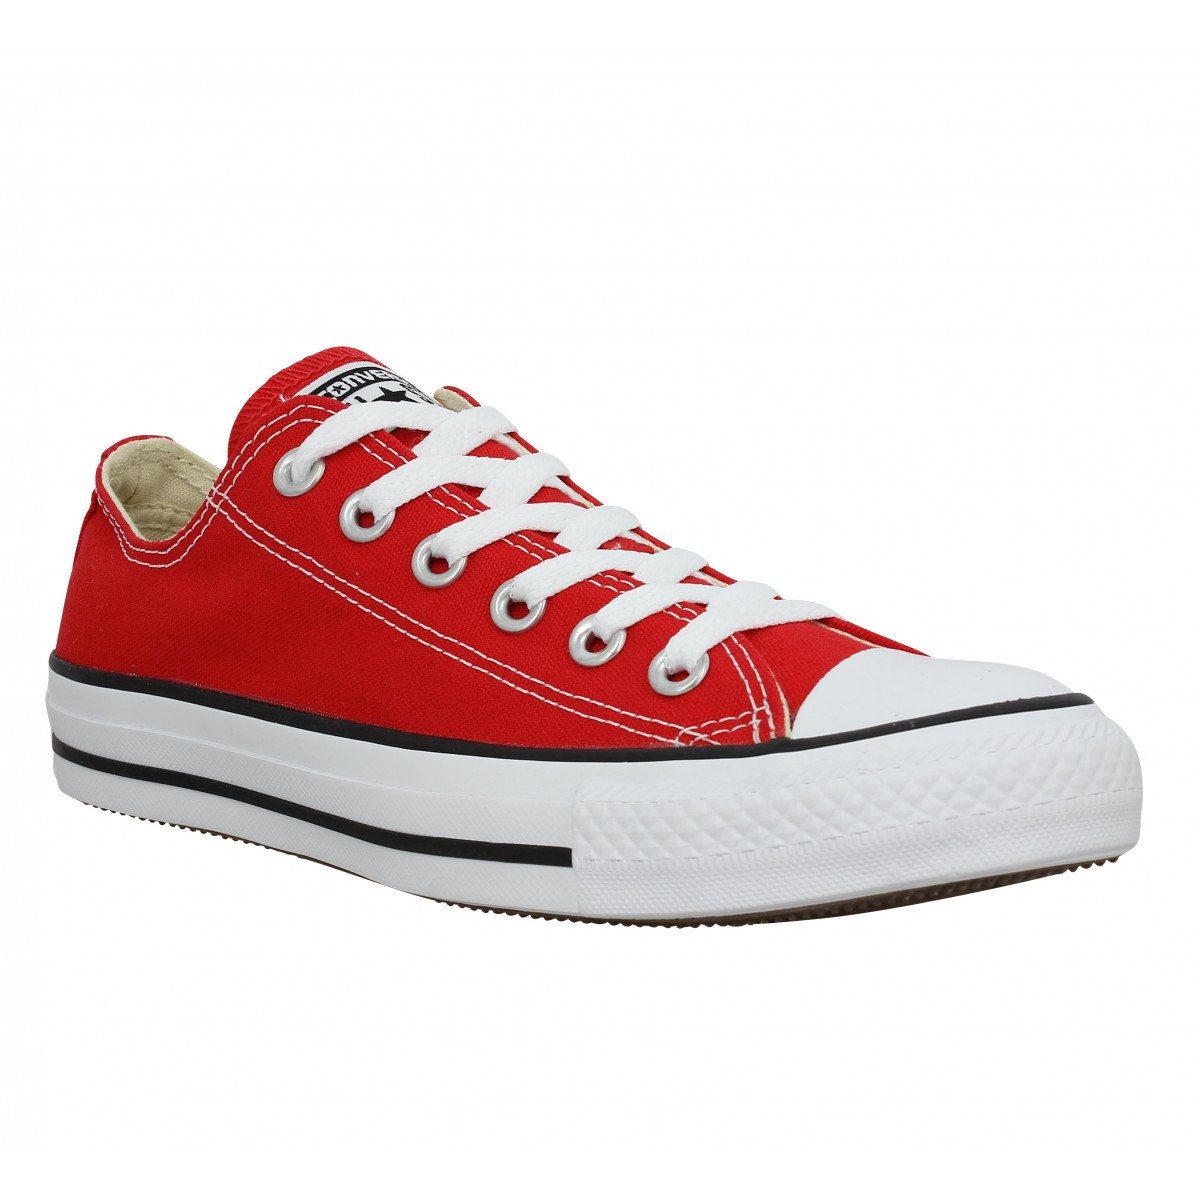 Baskets CONVERSE Chuck Taylor All Star toile Femme Rouge